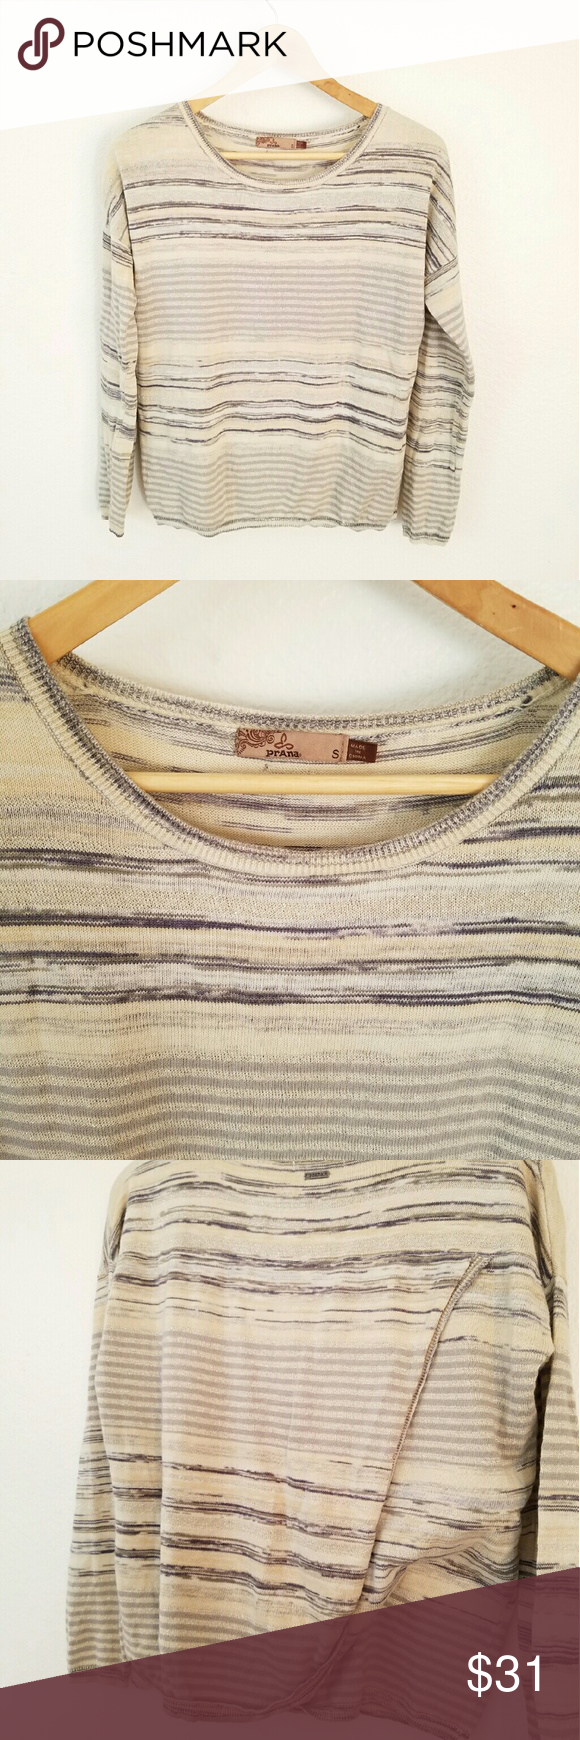 PRANA Shirt/Sweater Cool Prana Shirt, back wraps around as seen in photo 3, a little sparkly, great condition, worn about 8 times.94% cotton. Prana Tops Sweatshirts & Hoodies